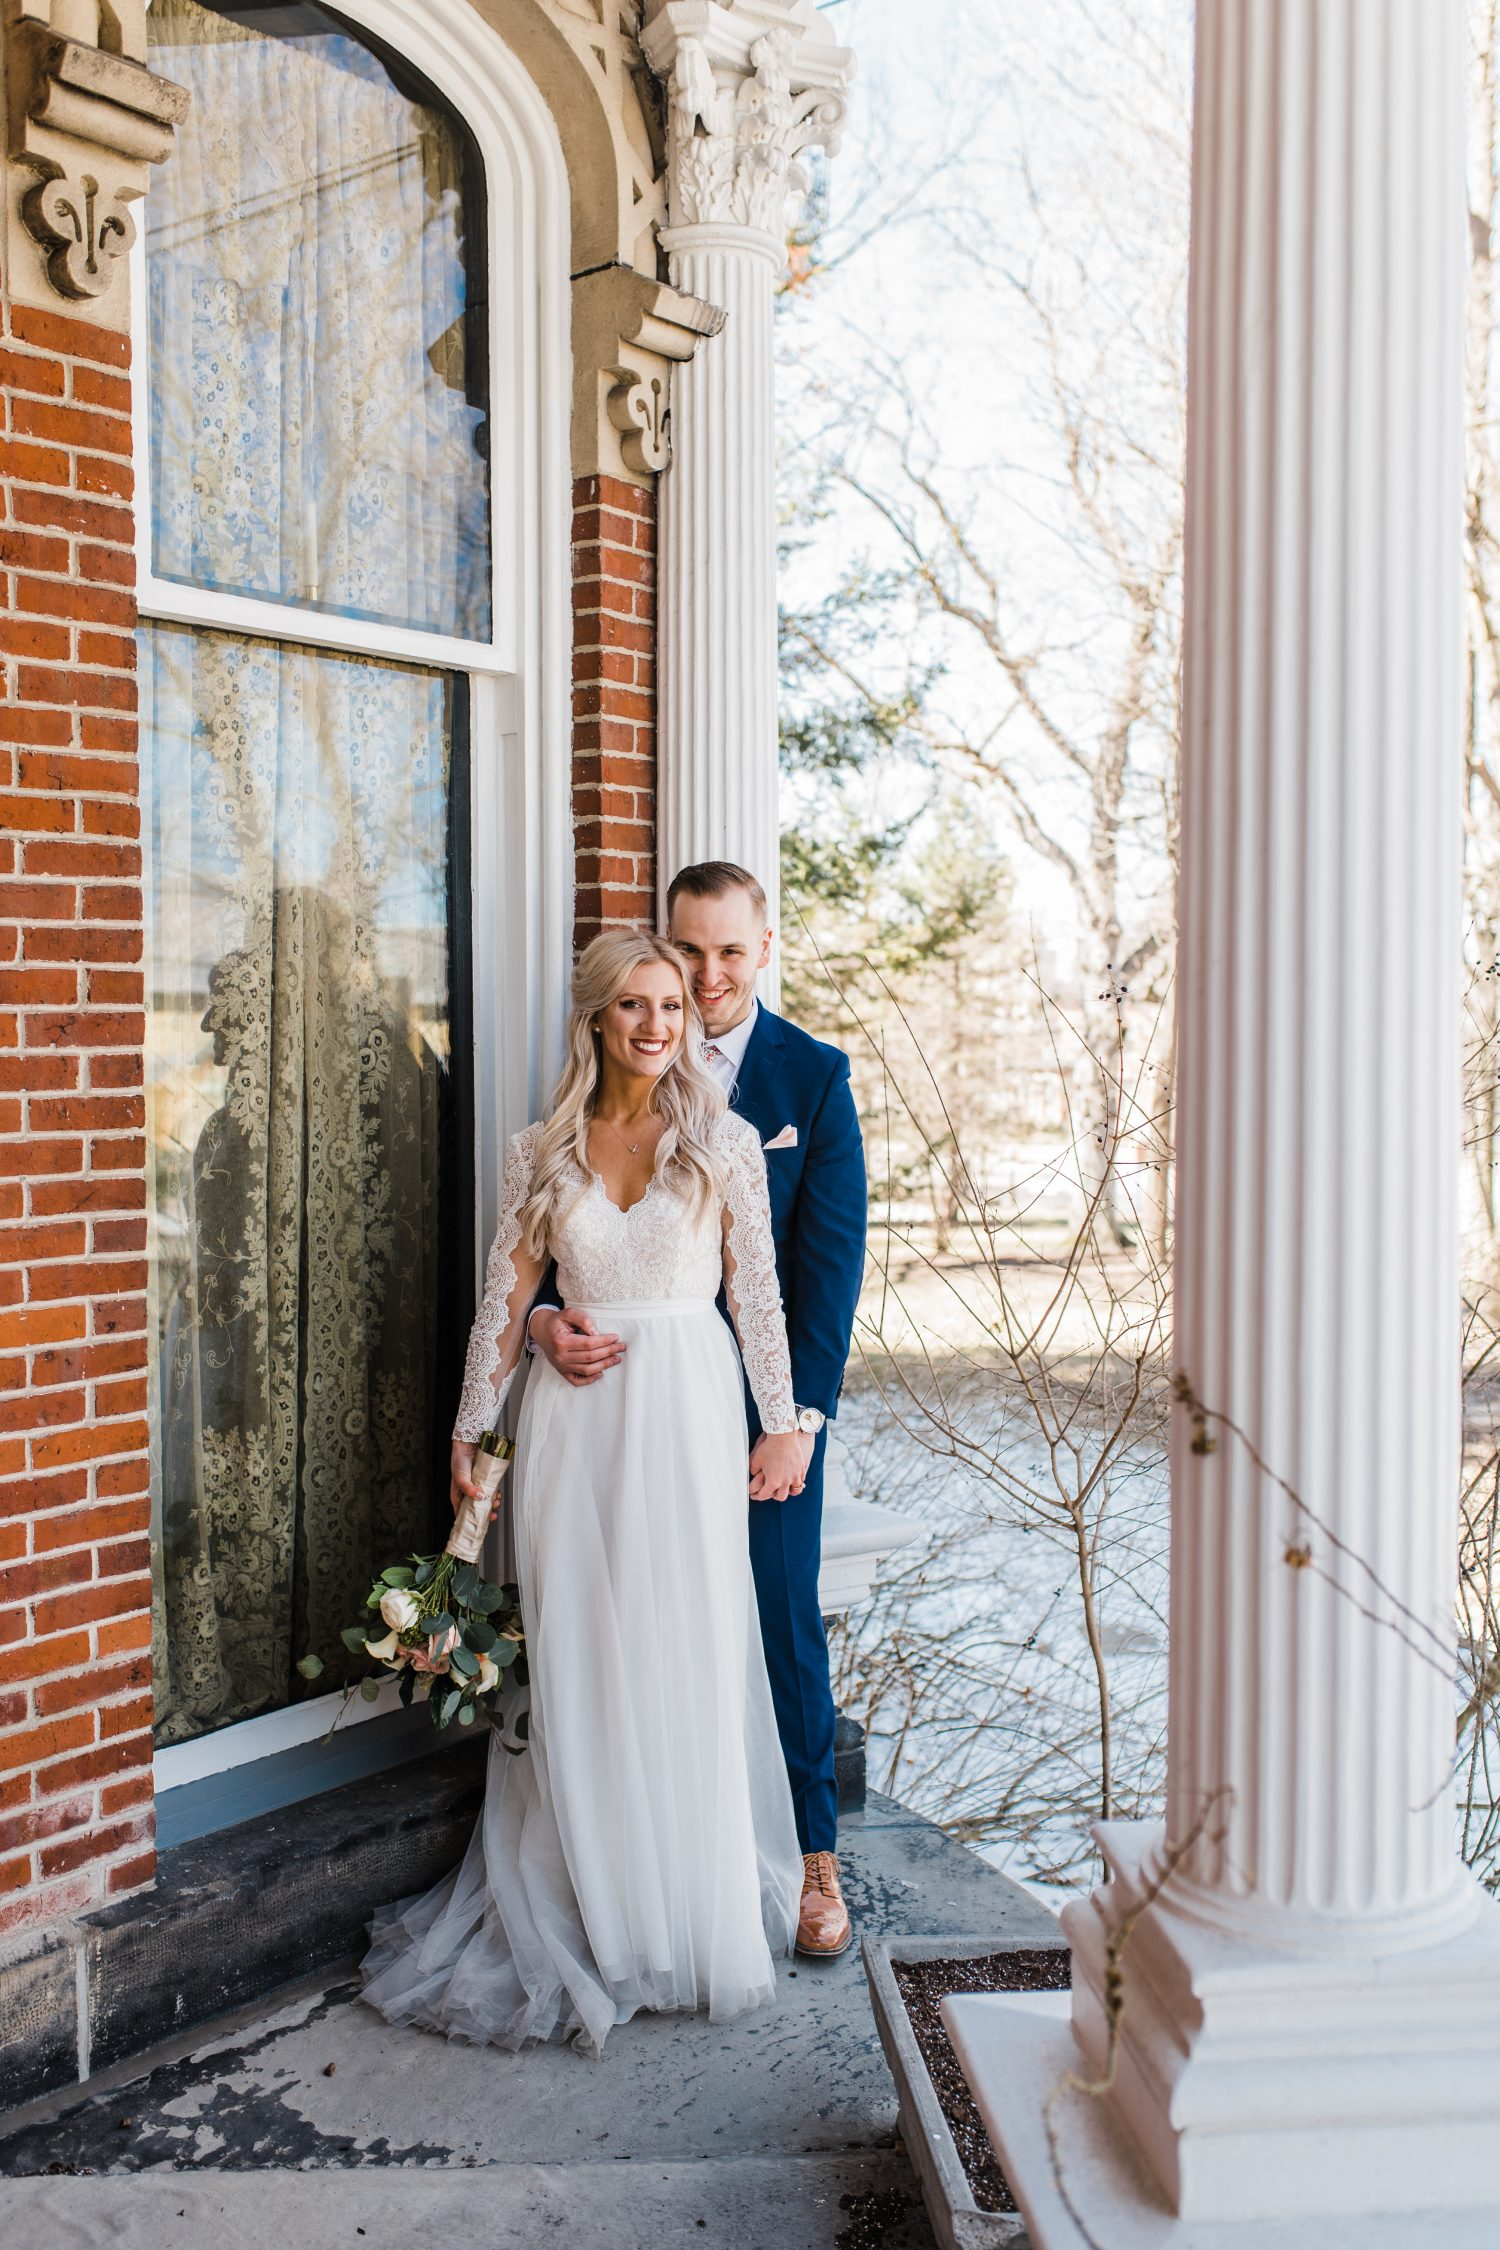 Emily + Ryan | Intimate and Romantic Akron, Ohio Wedding | Easterday Creative | Adventurous wedding photographer and storyteller